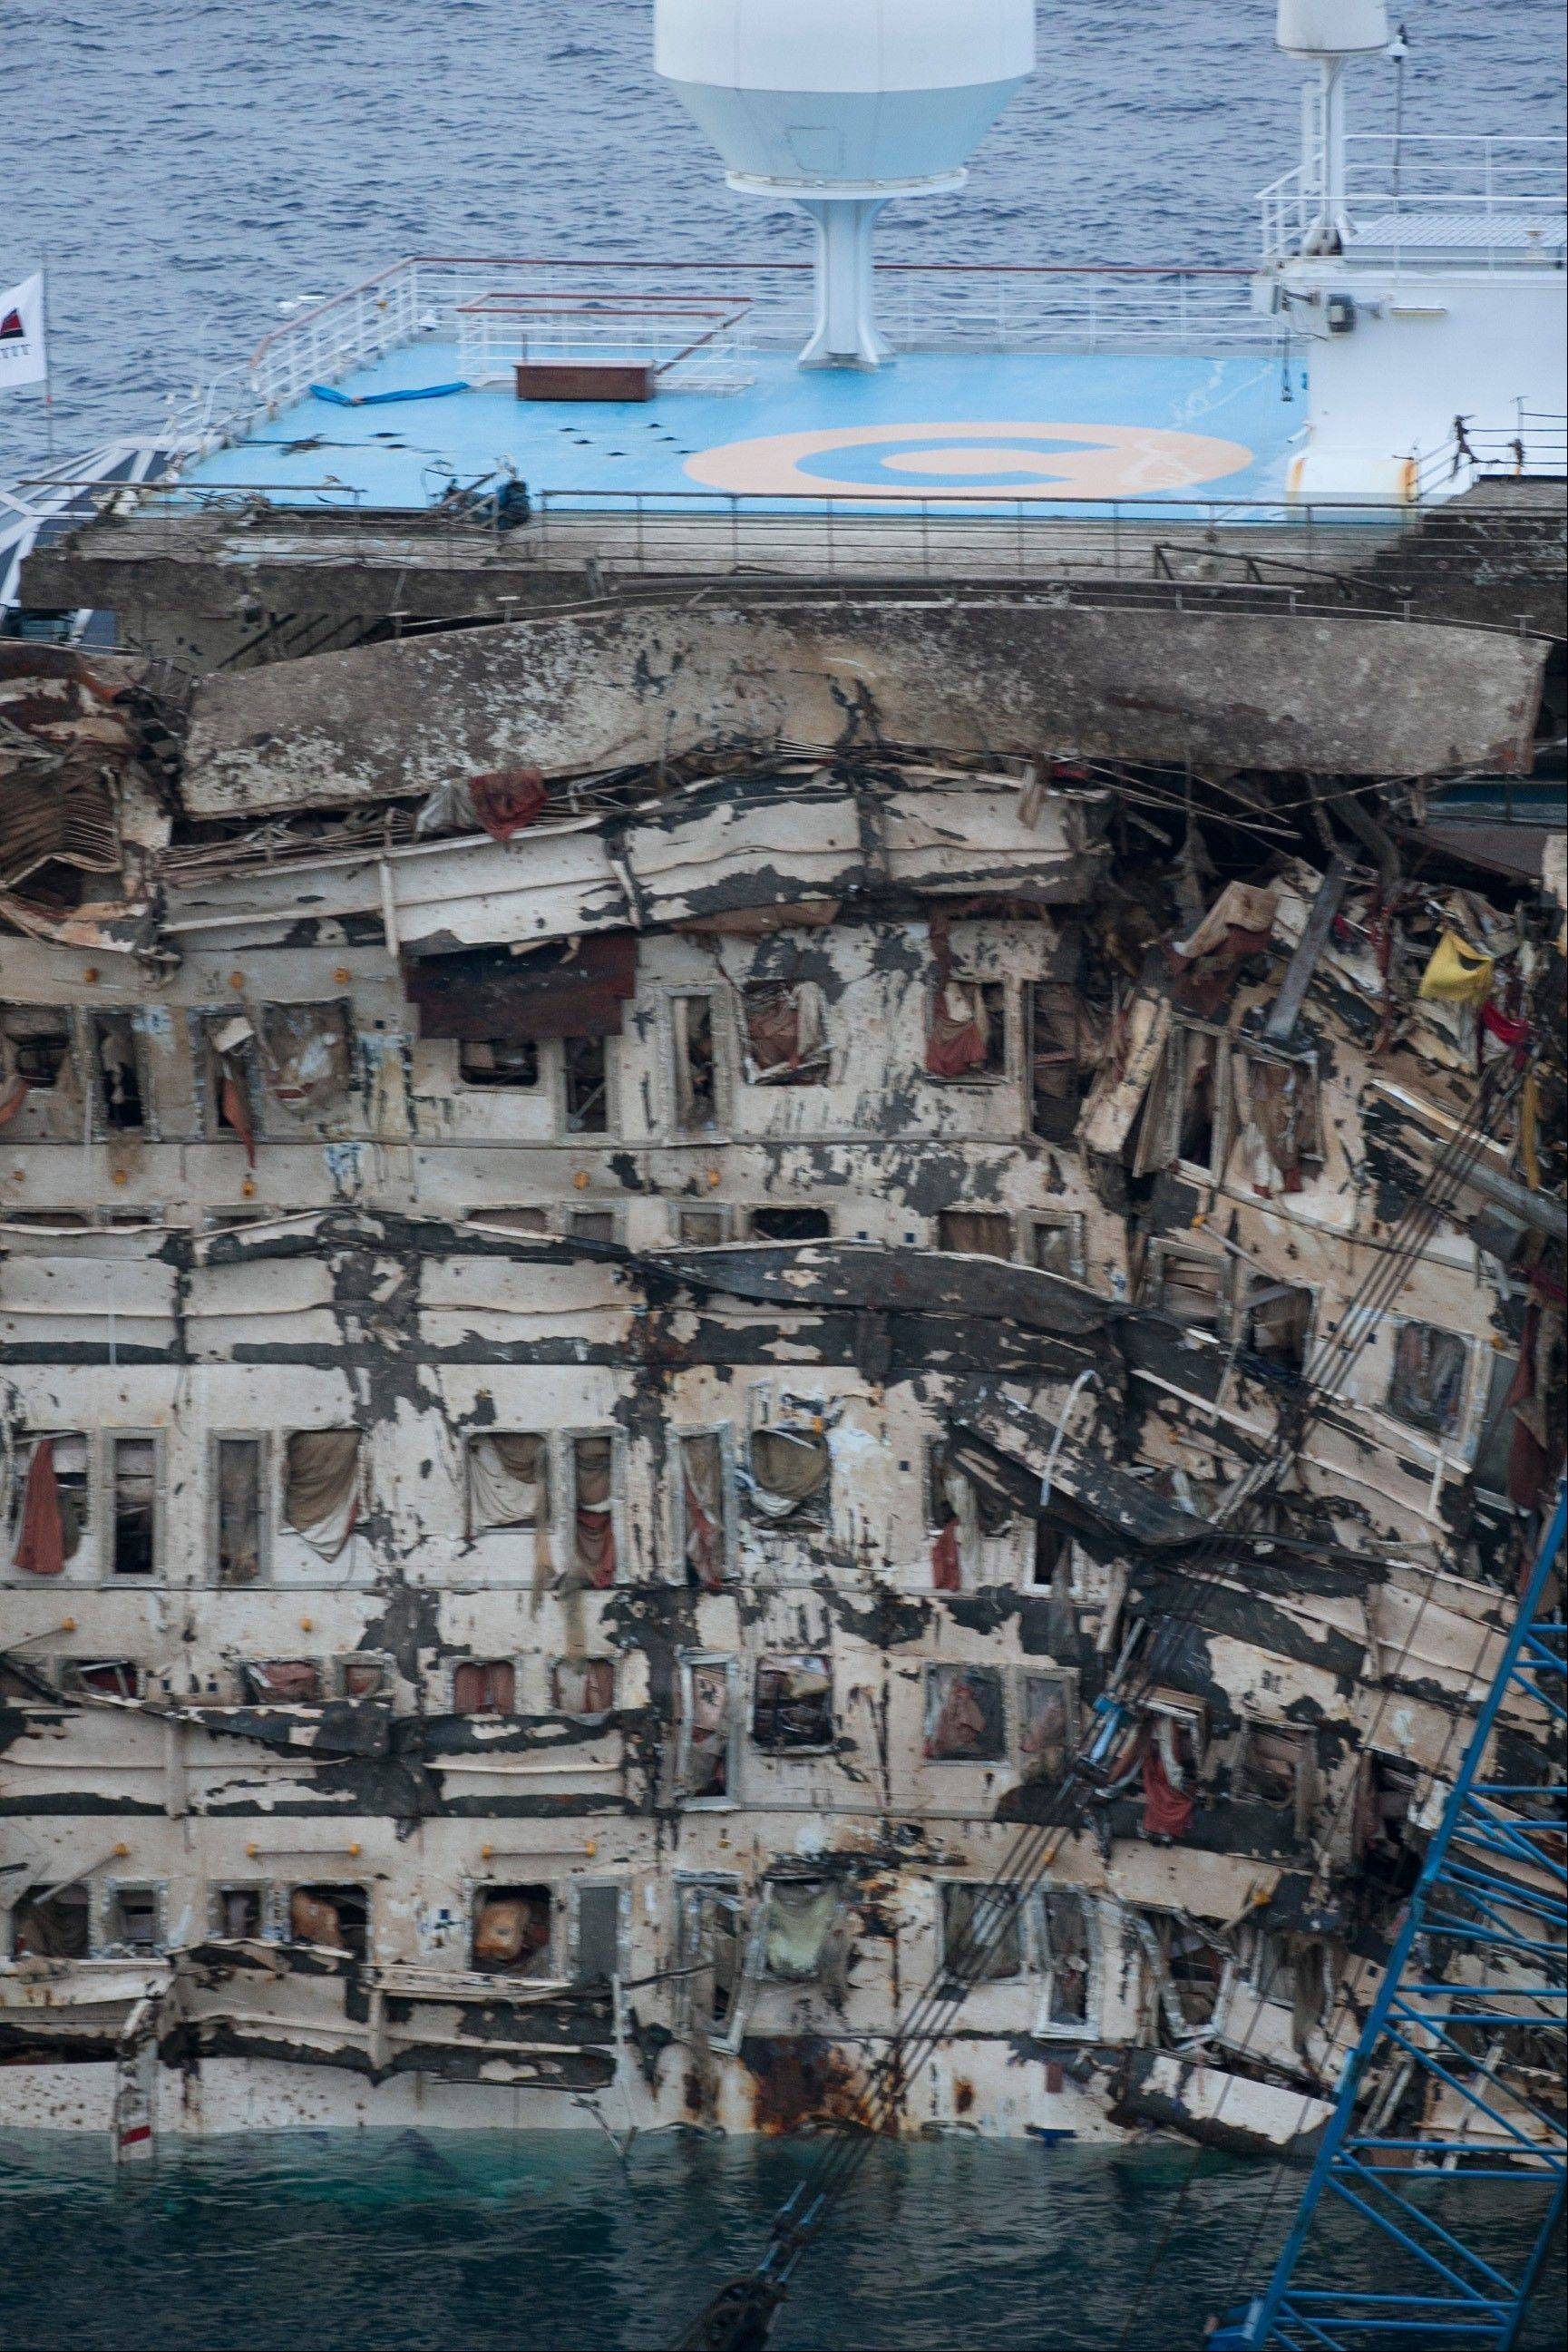 "A detail of the right side of the Costa Concordia is seen after it was lifted upright on the Tuscan Island of Giglio, Italy, early Tuesday morning, Sept. 17, 2013. The crippled cruise ship was pulled completely upright early Tuesday after a complicated, 19-hour operation to wrench it from its side where it capsized last year off Tuscany, with officials declaring it a ""perfect"" end to a daring and unprecedented engineering feat."